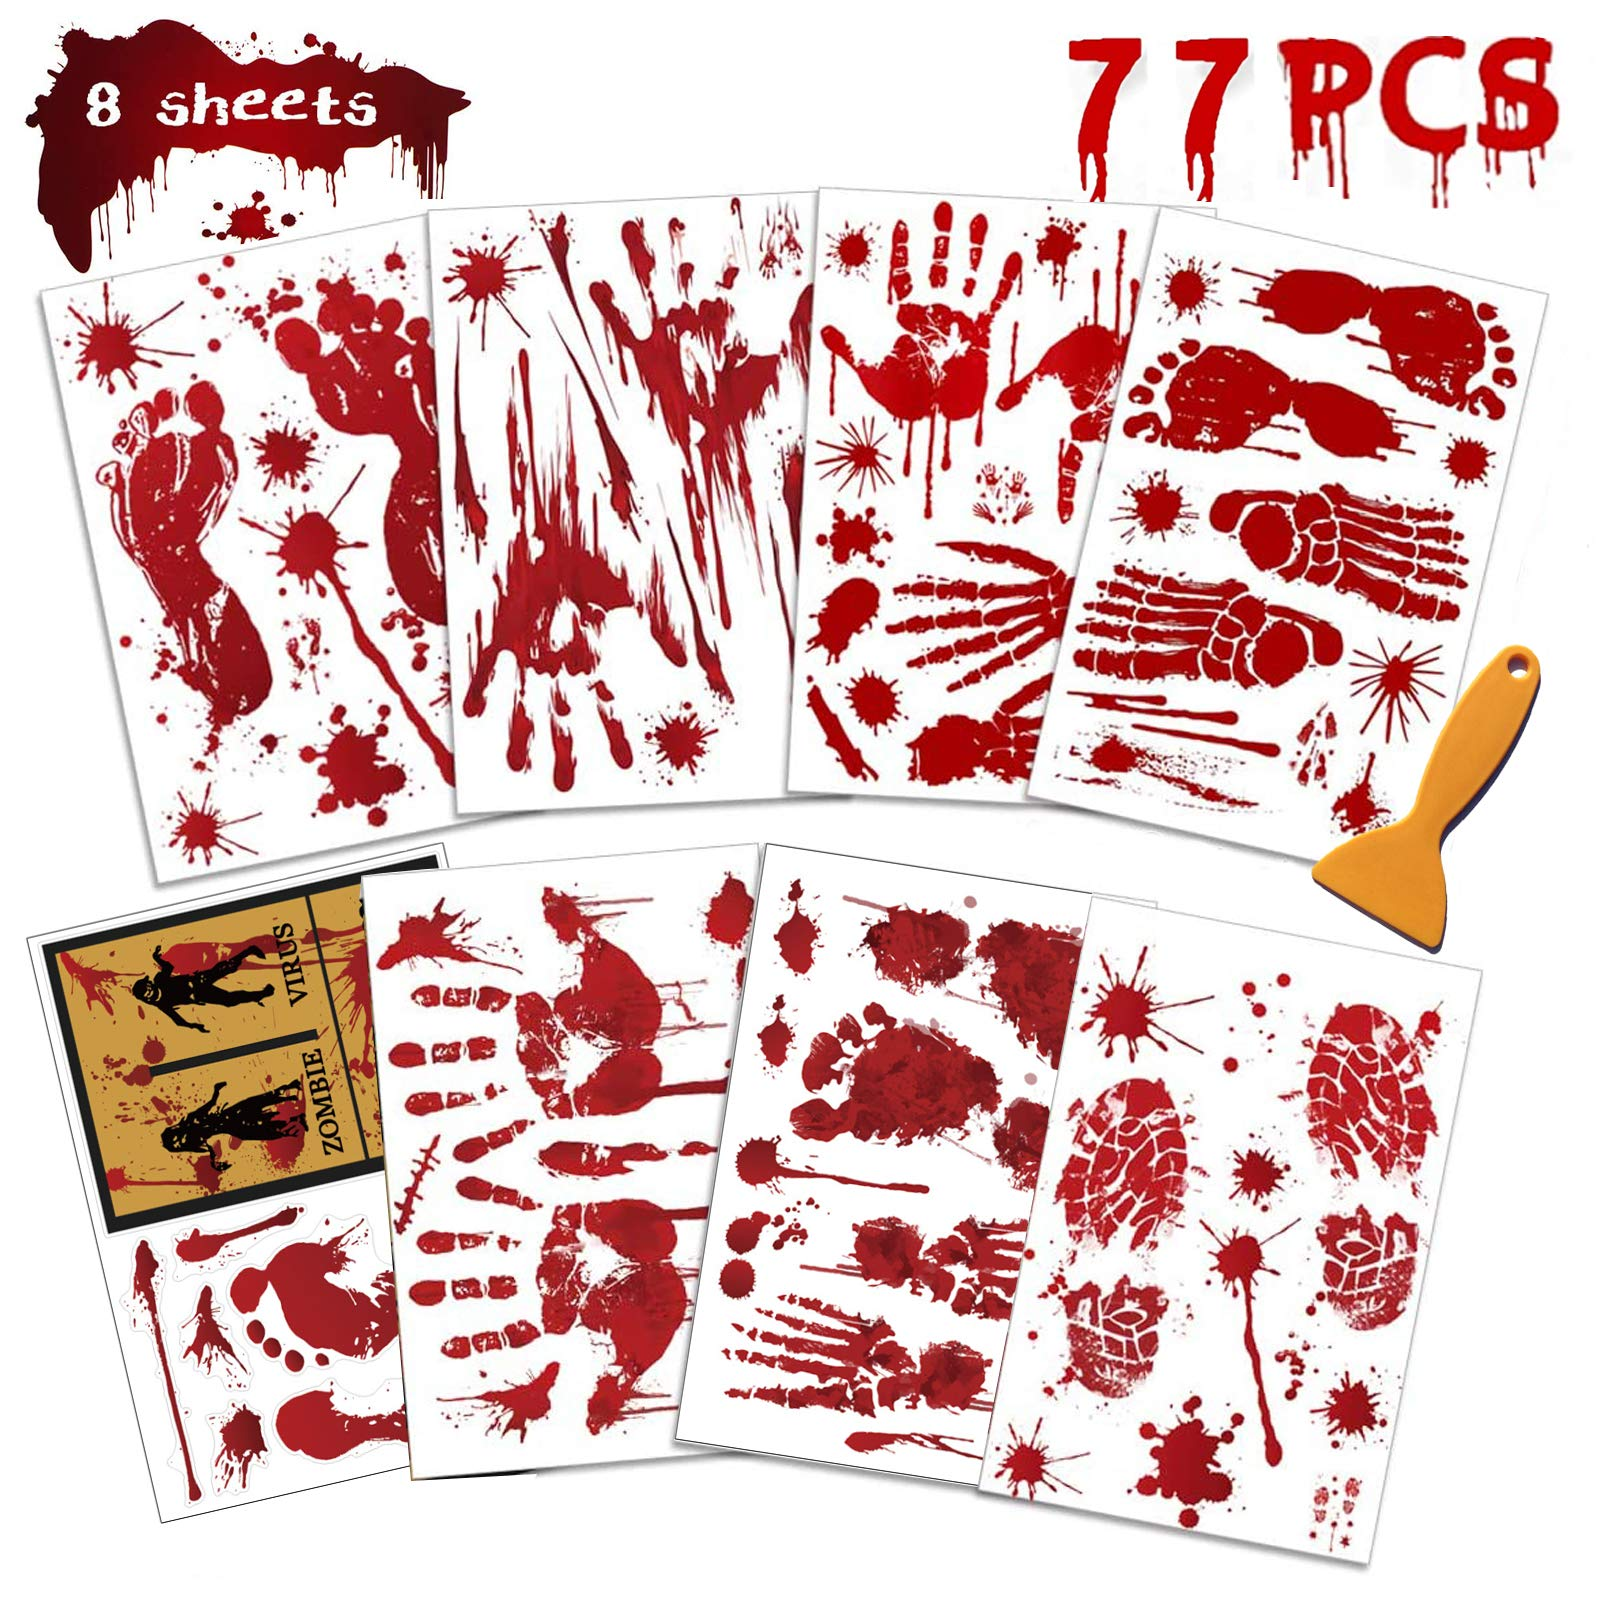 Decoration Halloween Tati.Amazon Com Bloody Handprint Footprint Halloween Decorations 77 Pcs Halloween Window Clings Creepy Halloween Window Decoration Spooky Window Stickers For Halloween Party Decorations Arts Crafts Sewing